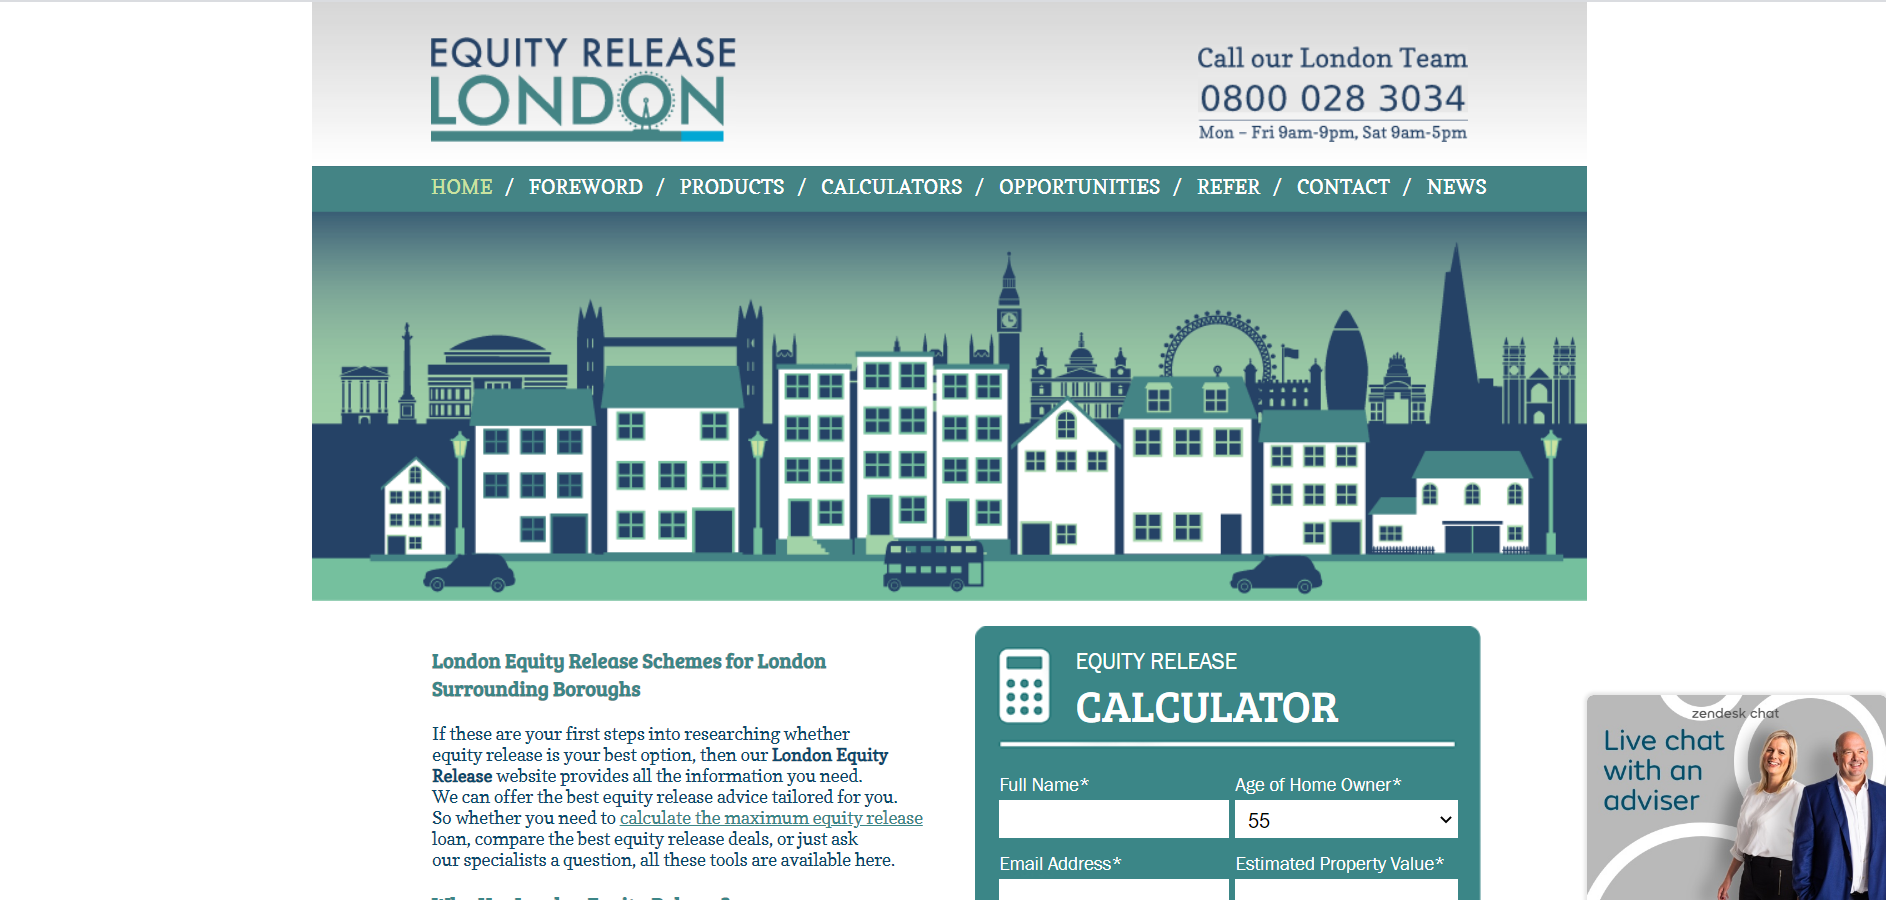 London Equity Release#